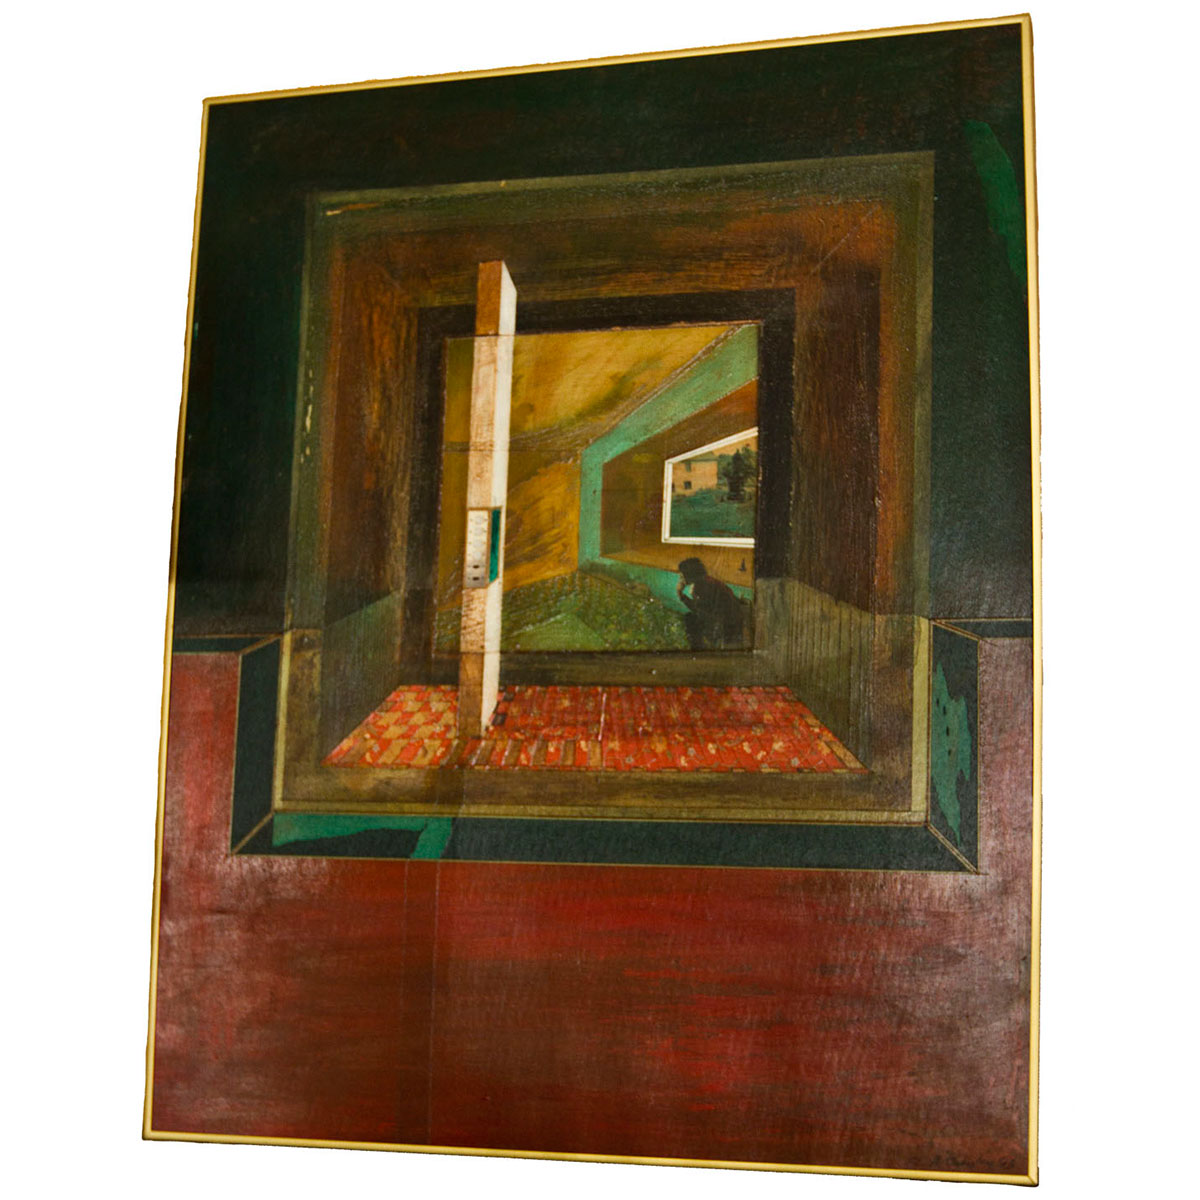 Large Modernist 'Case Study' Perspective Painting